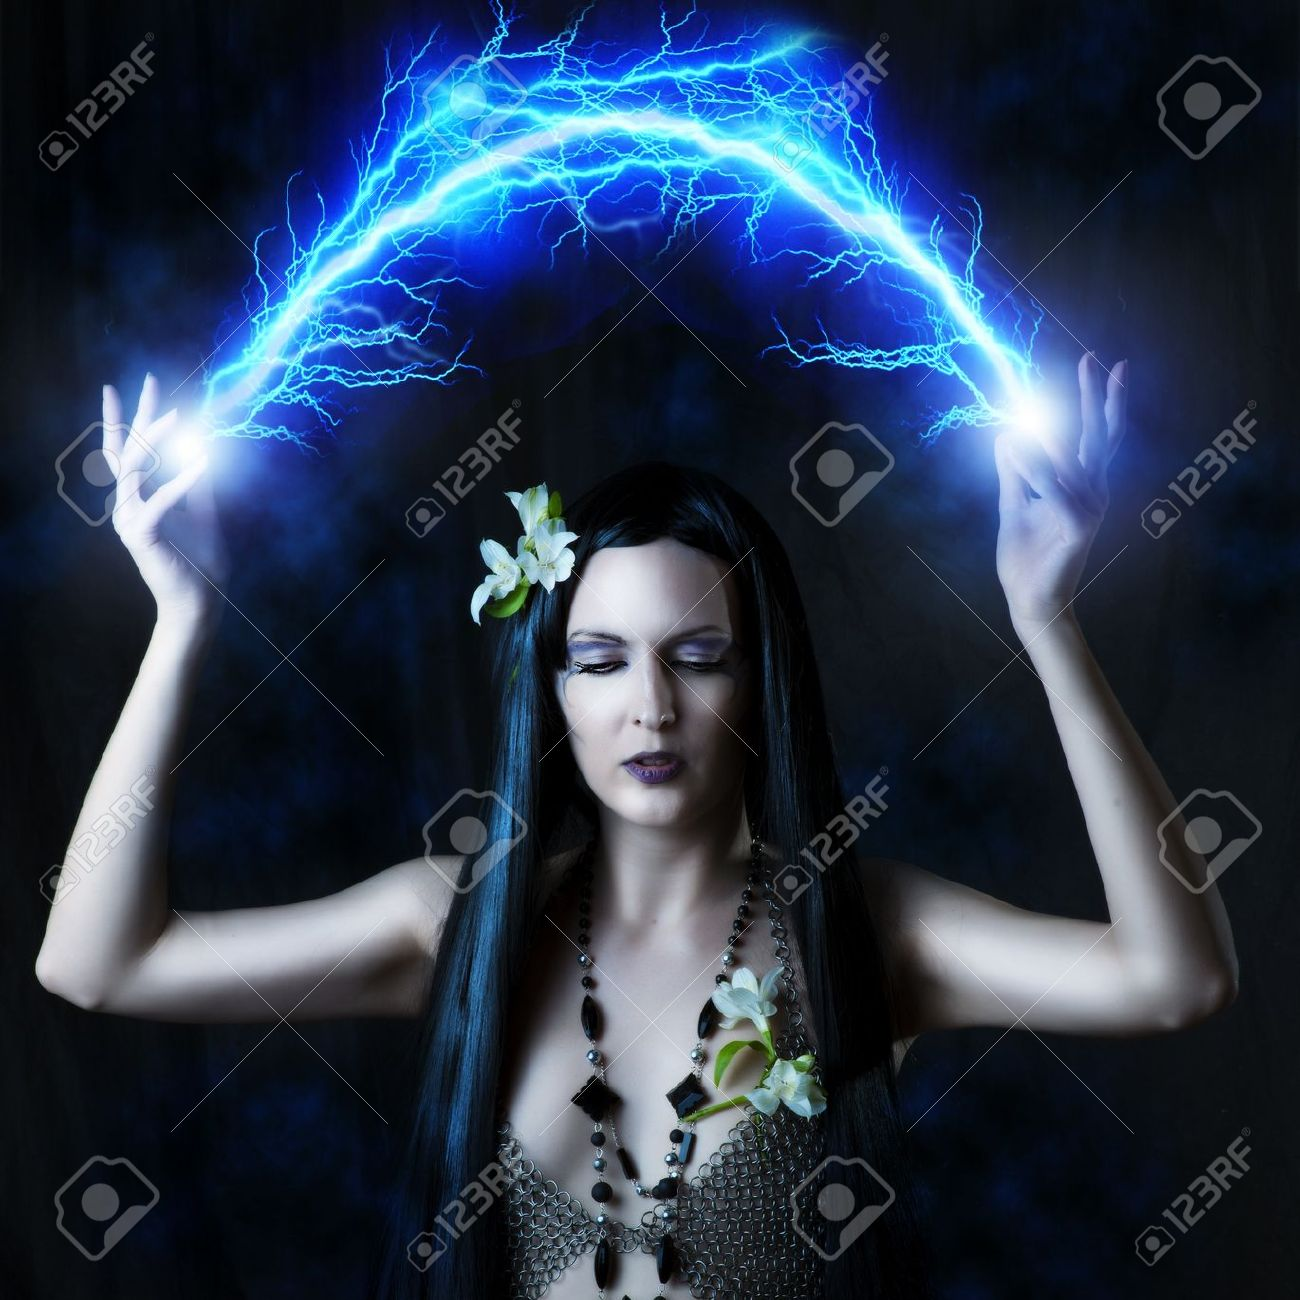 fashion portrait of woman witch or elf she is making